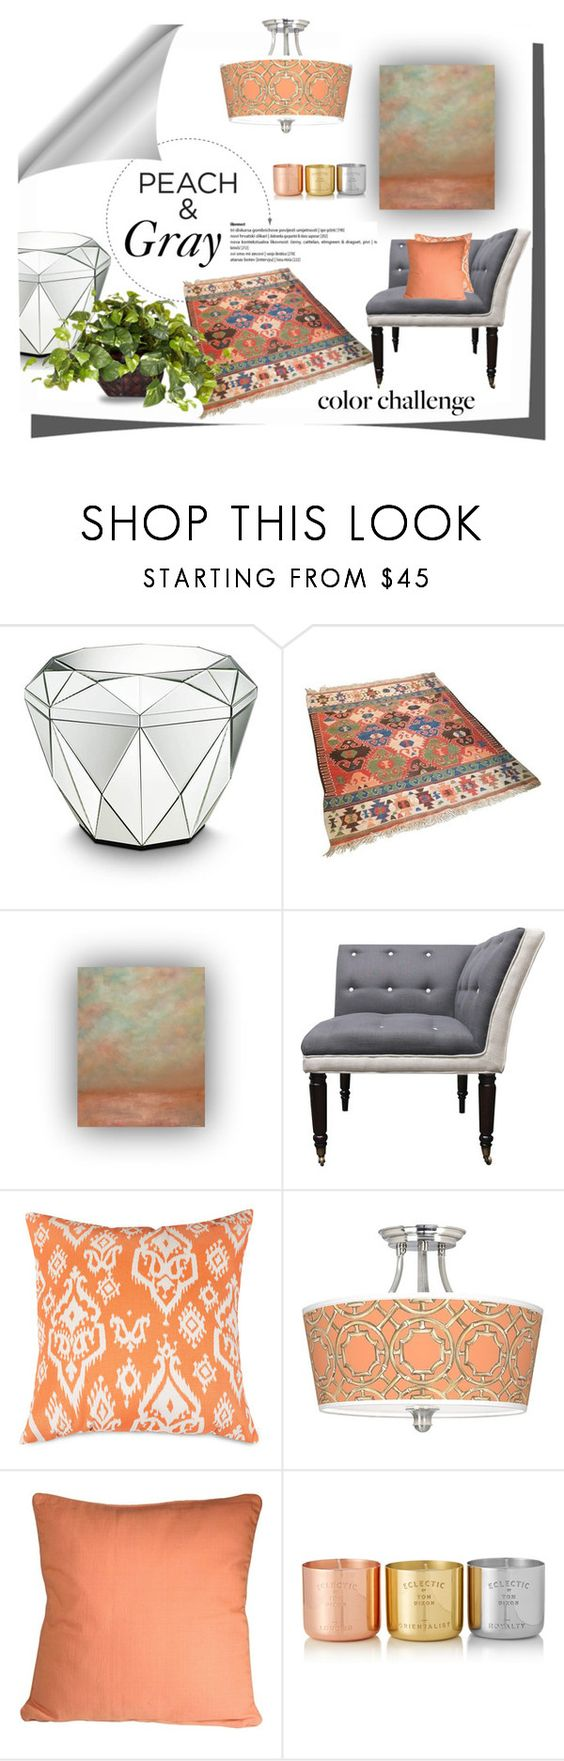 """""""Peach and Gray"""" by surfergirl3915-1 ❤ liked on Polyvore featuring interior, interiors, interior design, home, home decor, interior decorating, Amara, Dot & Bo, Giclee Gallery and Pillow Decor"""